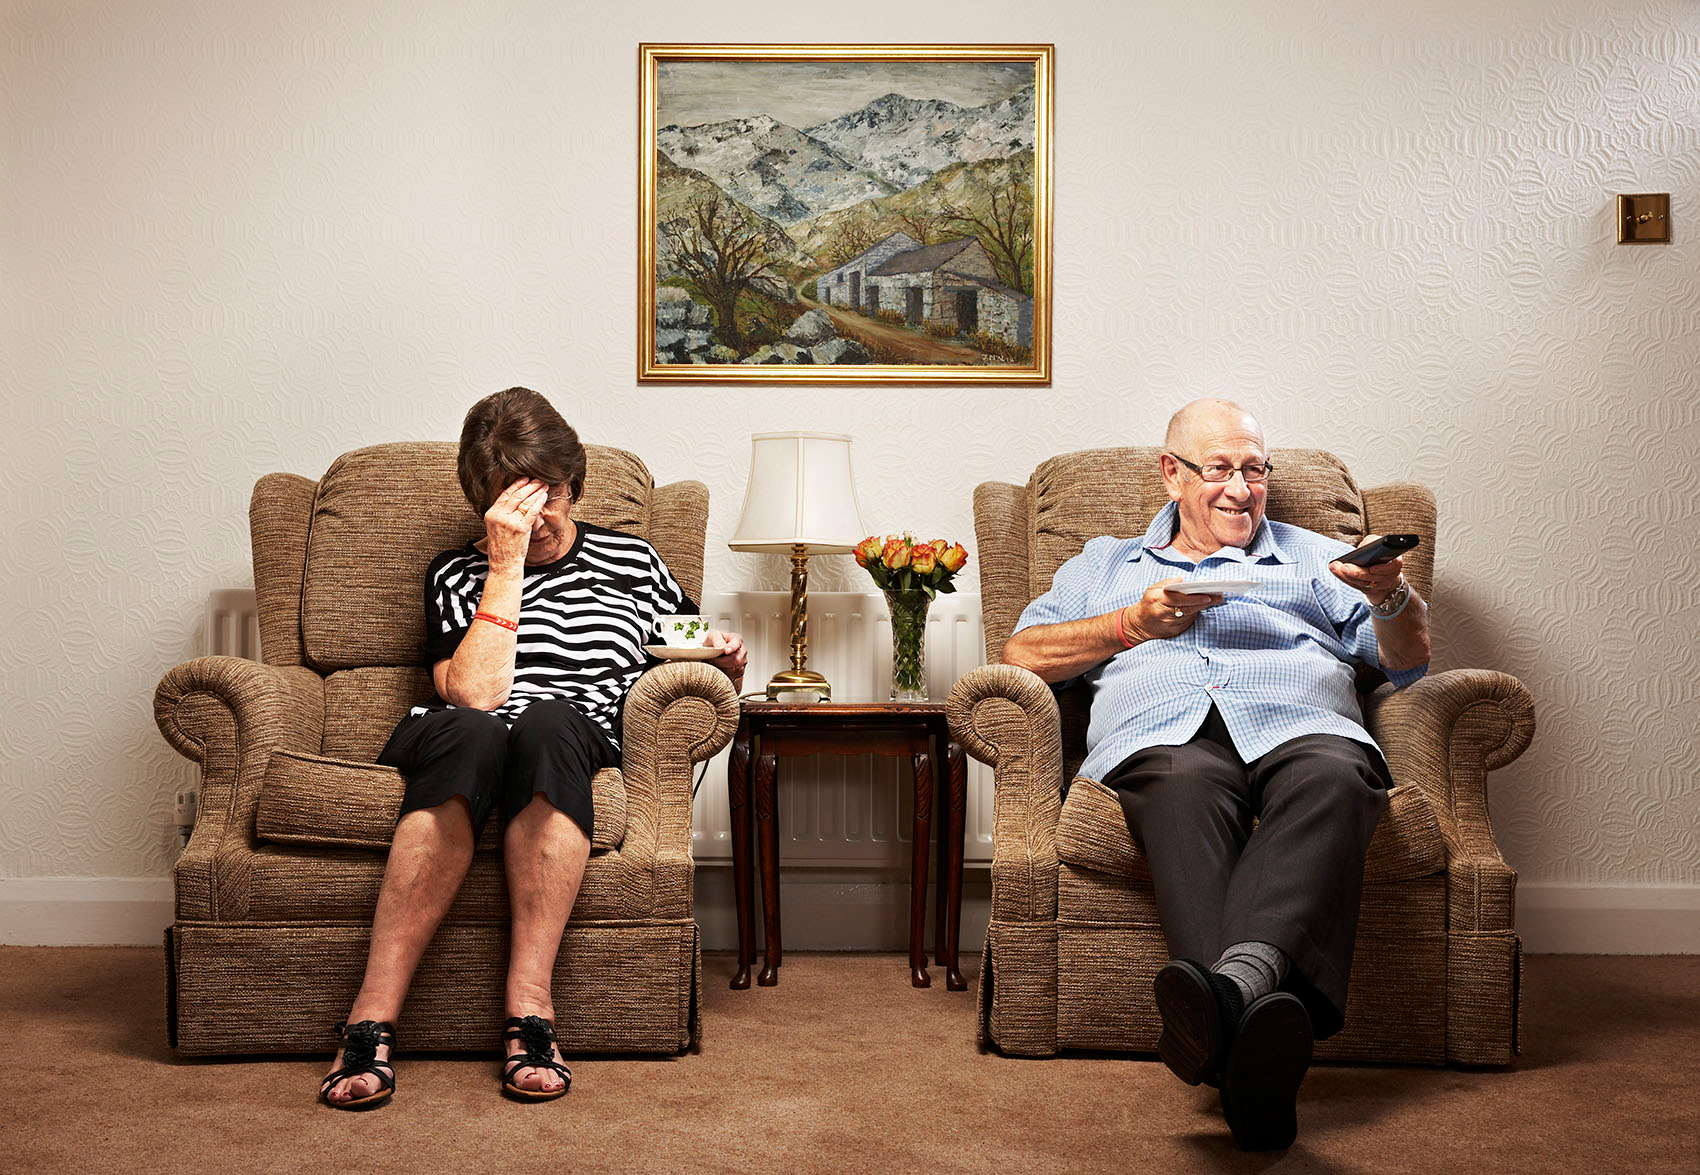 Channel-4_gogglebox_June-and-Leon-2I0T0495RT-HP.jpg